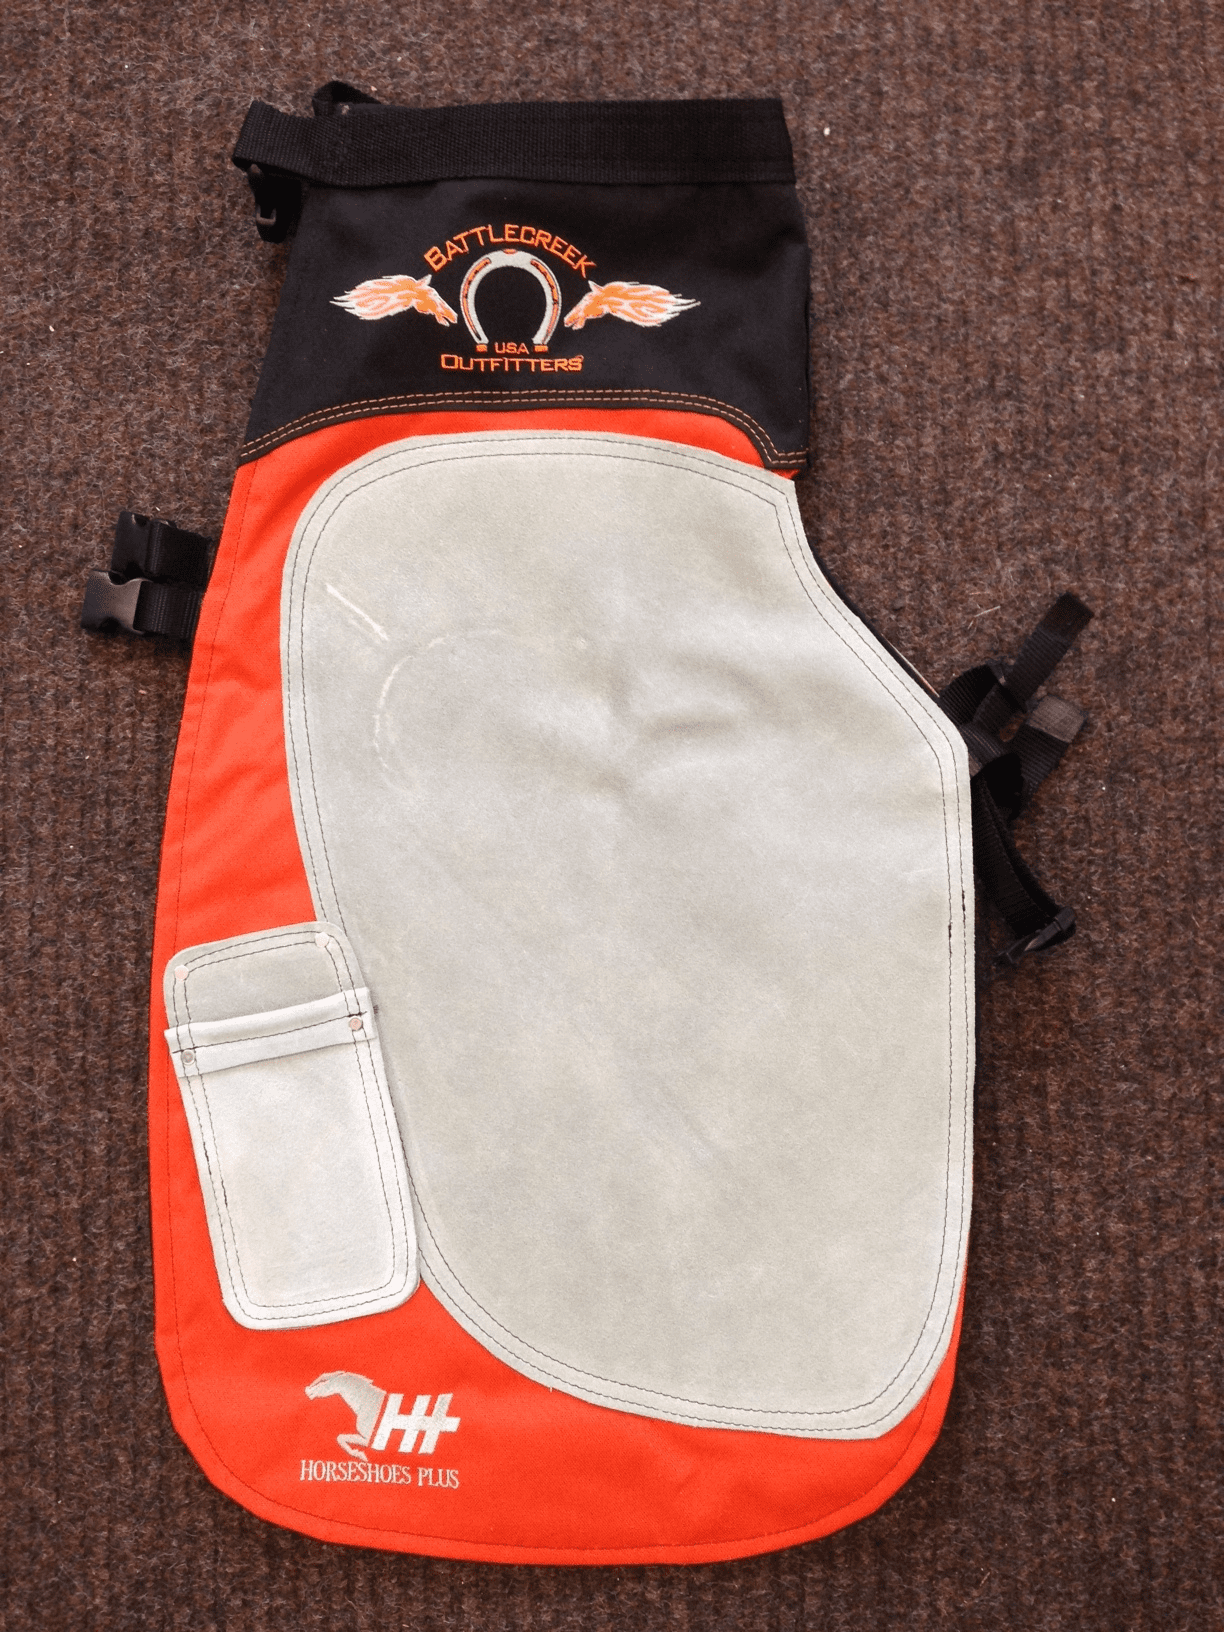 Battlecreek Apron Orange